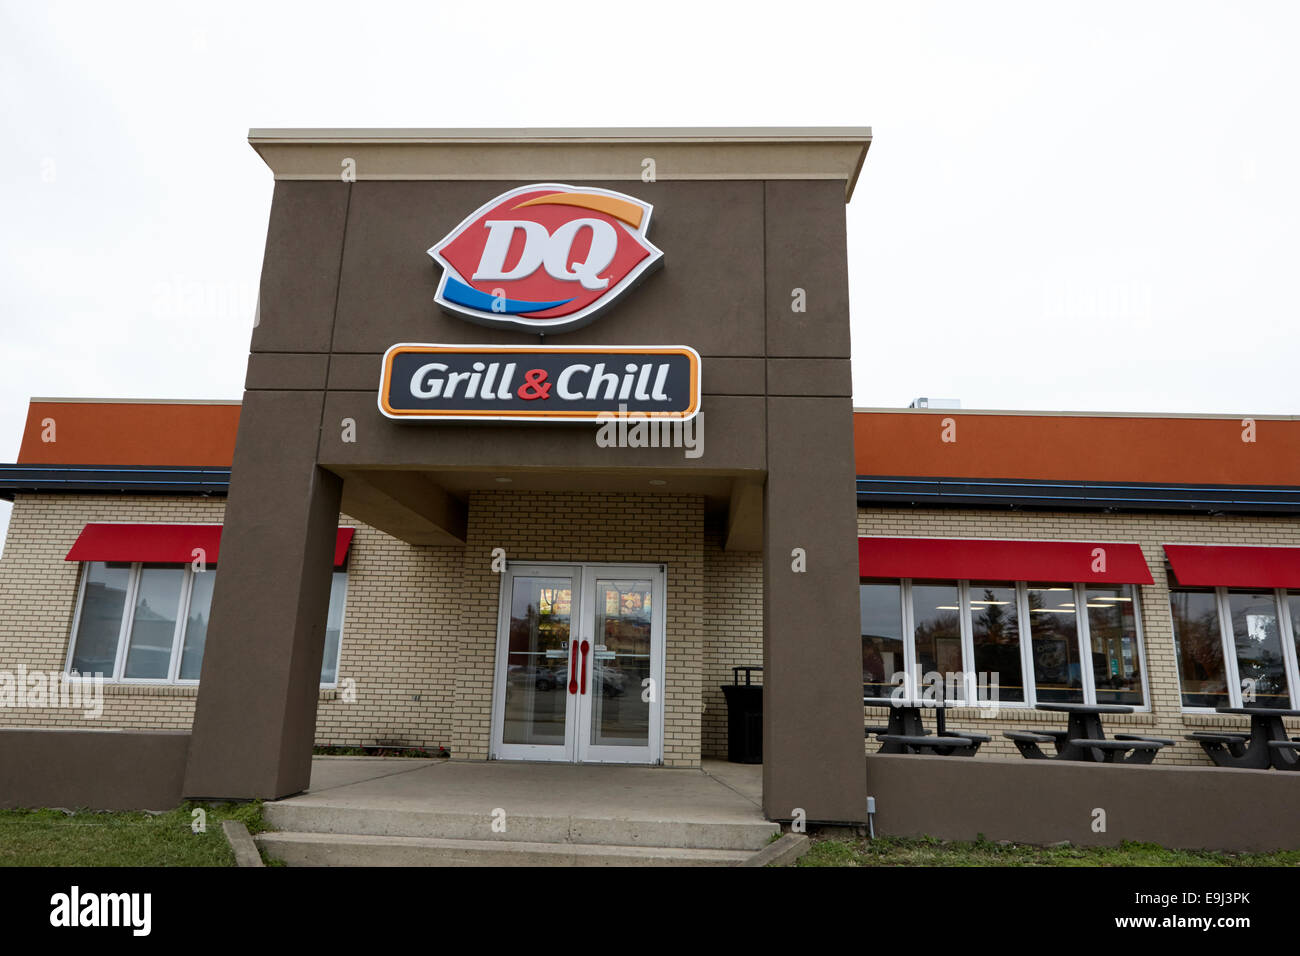 sign for dq dairy queen grill and chill restaurant Saskatchewan Canada - Stock Image